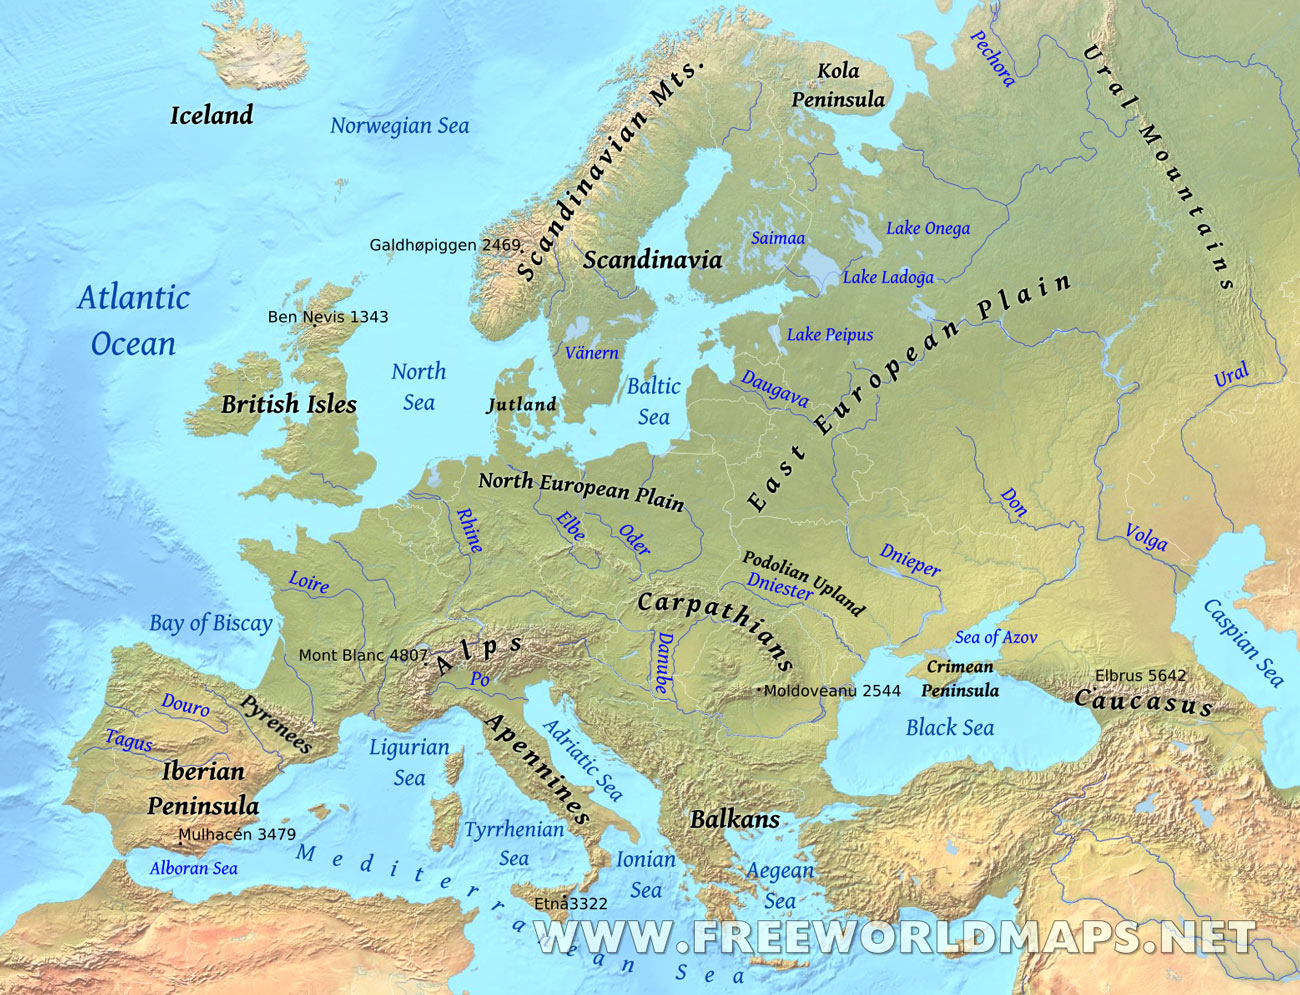 Europe Physical Map Freeworldmapsnet - Europe physical map